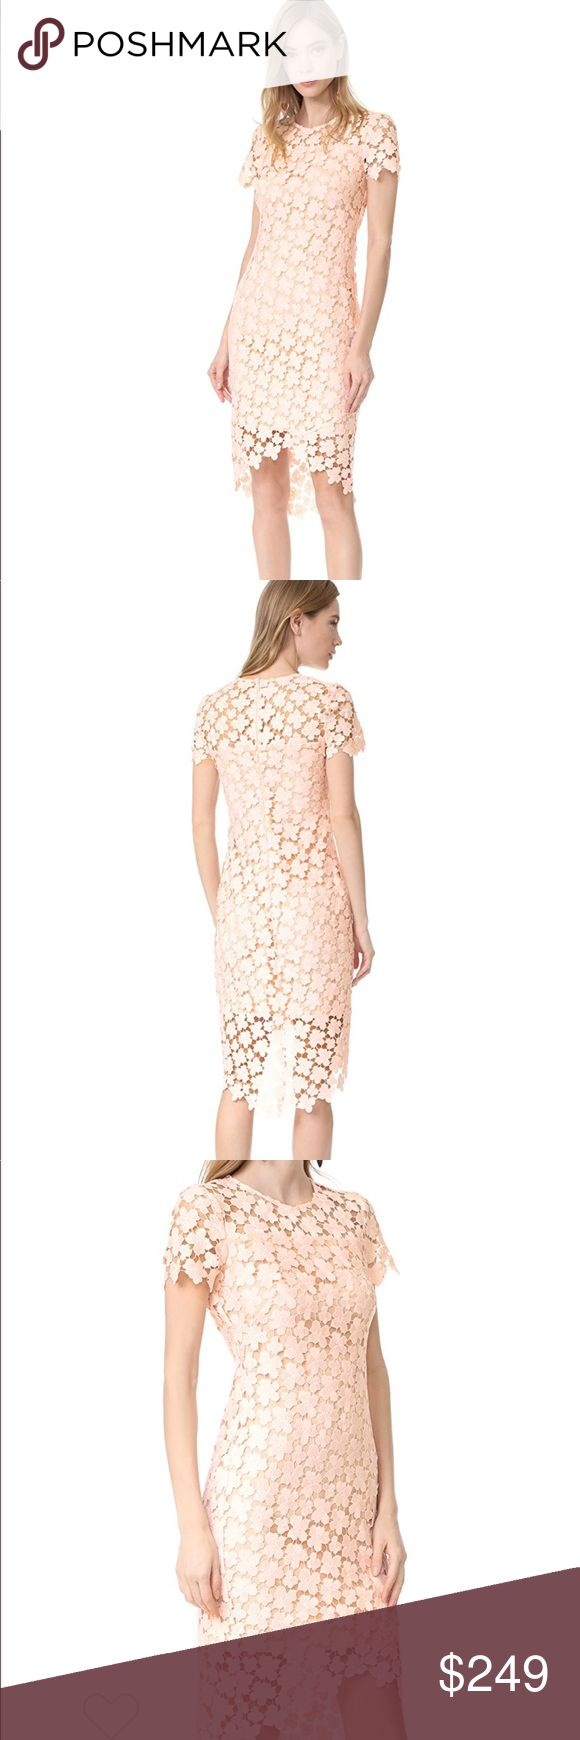 NWT Shoshanna Baylor Dress Size 0 New with Tag. Brand new Shoshanna blush dress in size 0 https://m.shopbop.com/baylor-dress-shoshanna/vp/v=1/1514632904.htm DETAILS  A guipure lace Shoshanna dress in a formfitting silhouette. Sheer panels at the yoke and hem reveal a peek of skin. Short sleeves. Hidden back zip. Tonal lining.  Fabric: Guipure lace. 100% polyester. Dry clean. Made in the USA.  Measurements Length 1: 34.75in / 88cm, from shoulder to shortest point Length 2: 43in / 109cm, from…